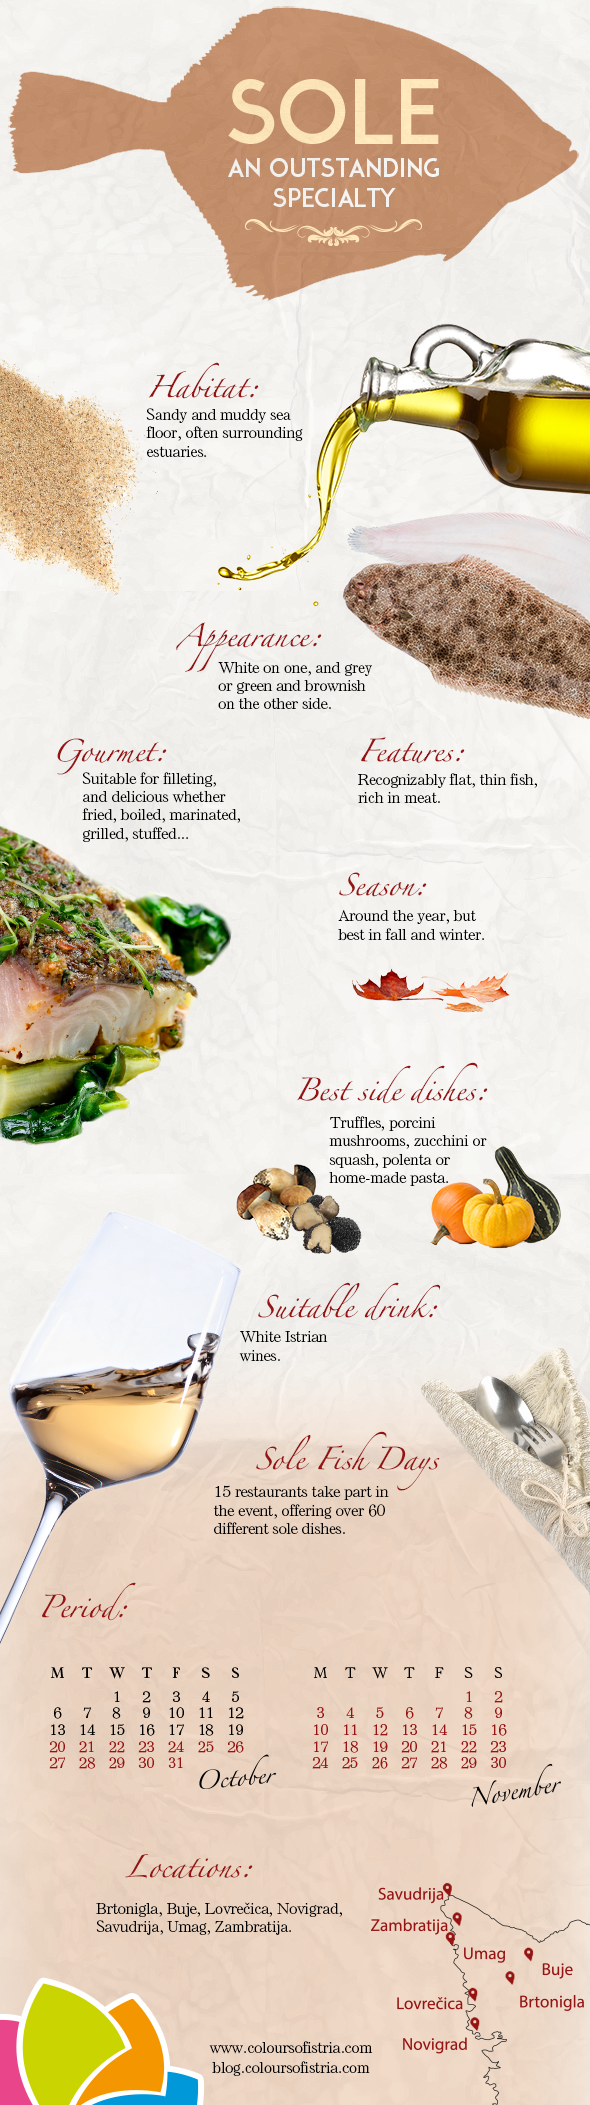 Sole_Fish_Days_Northwestern_Istria_Infographic